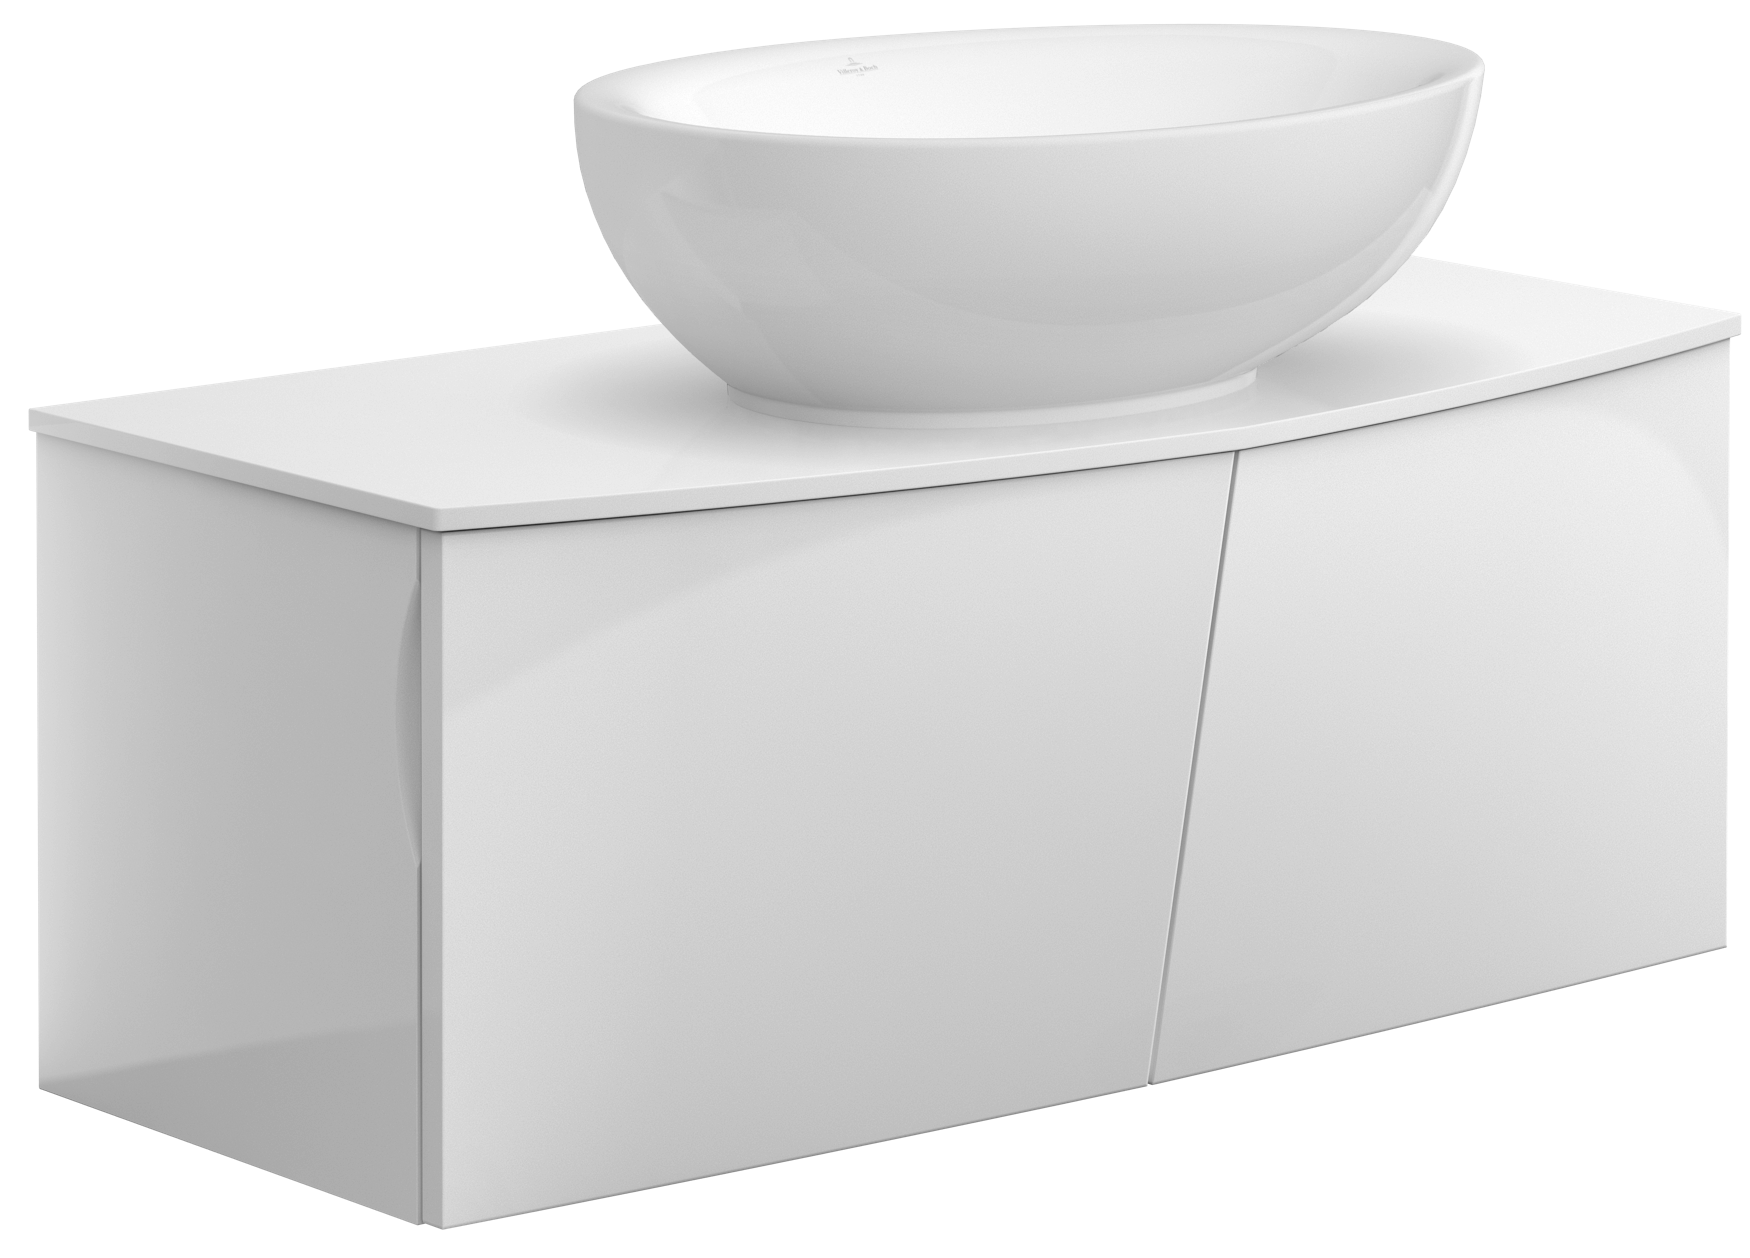 Villeroy And Boch Vanity aveo new generation vanity unit a845gf - villeroy & boch